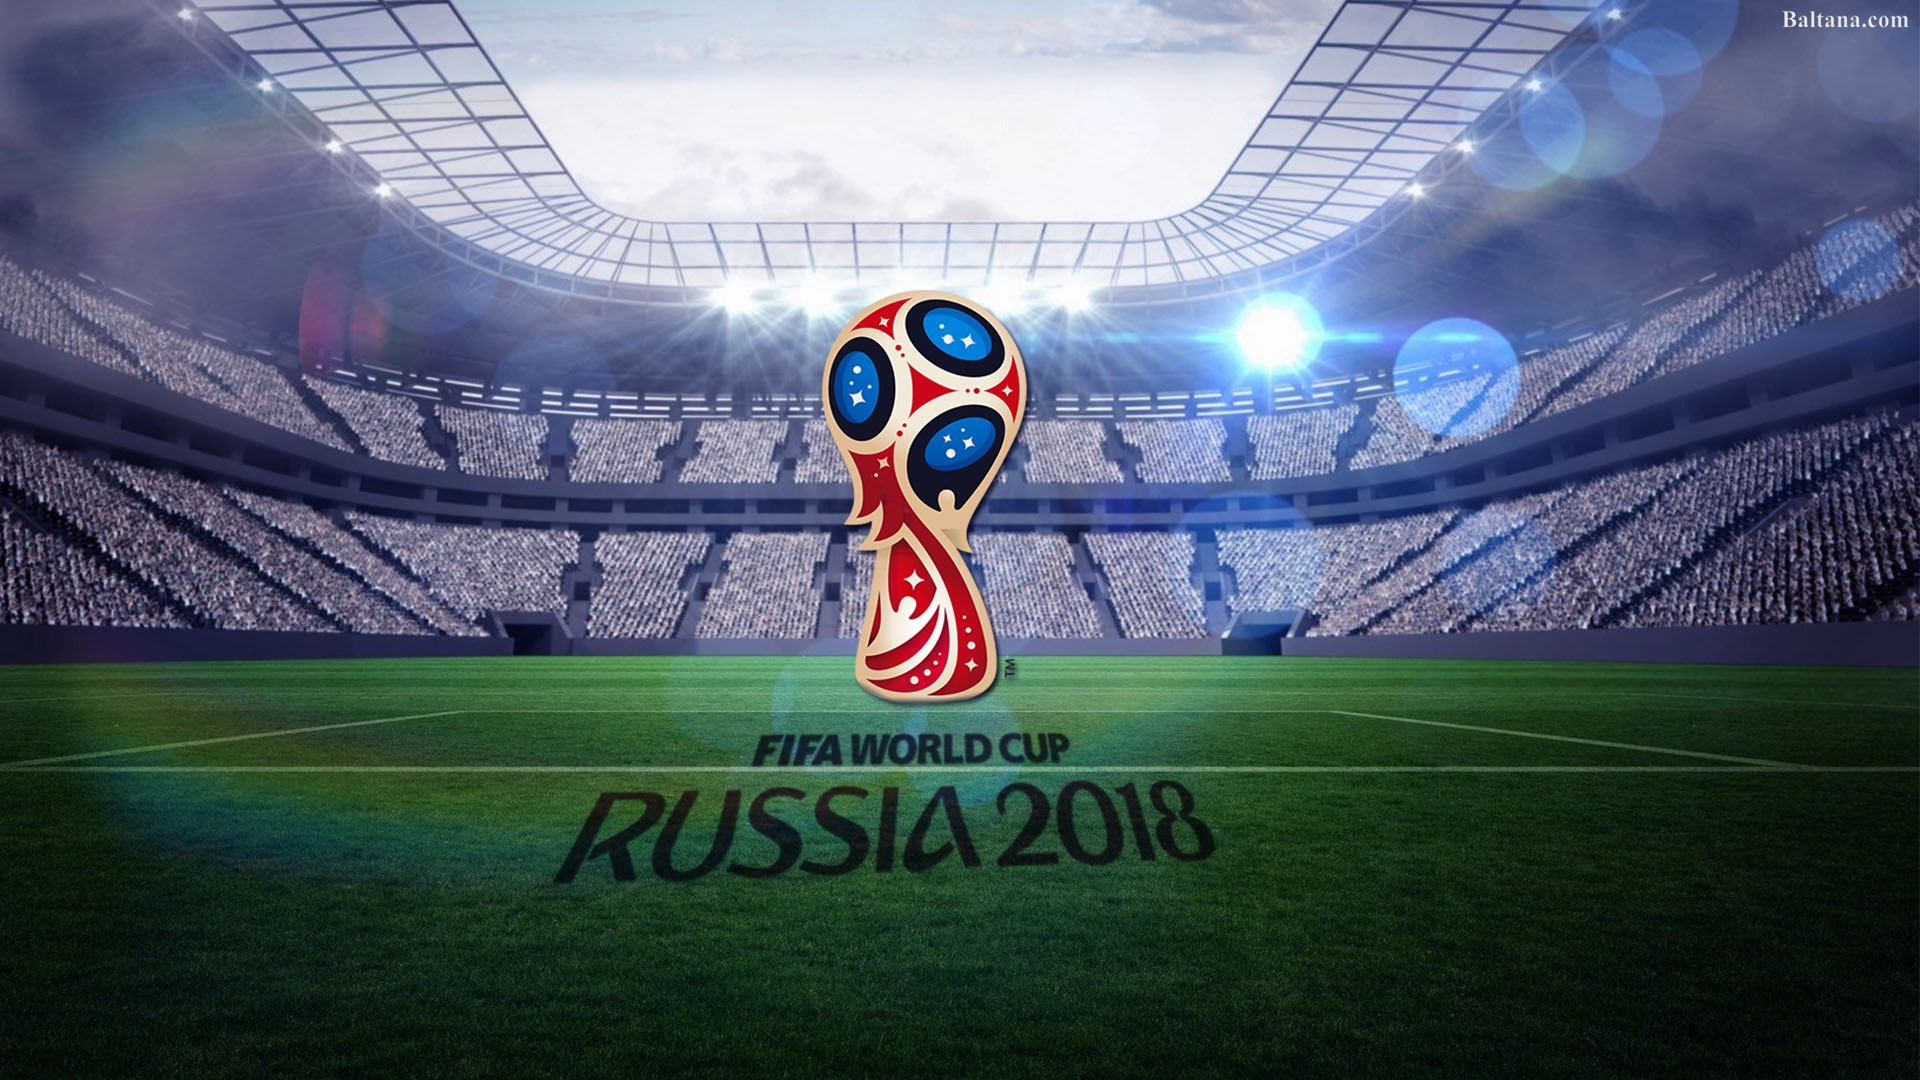 1920x1080 - FIFA World Cup 2018 Wallpapers 27